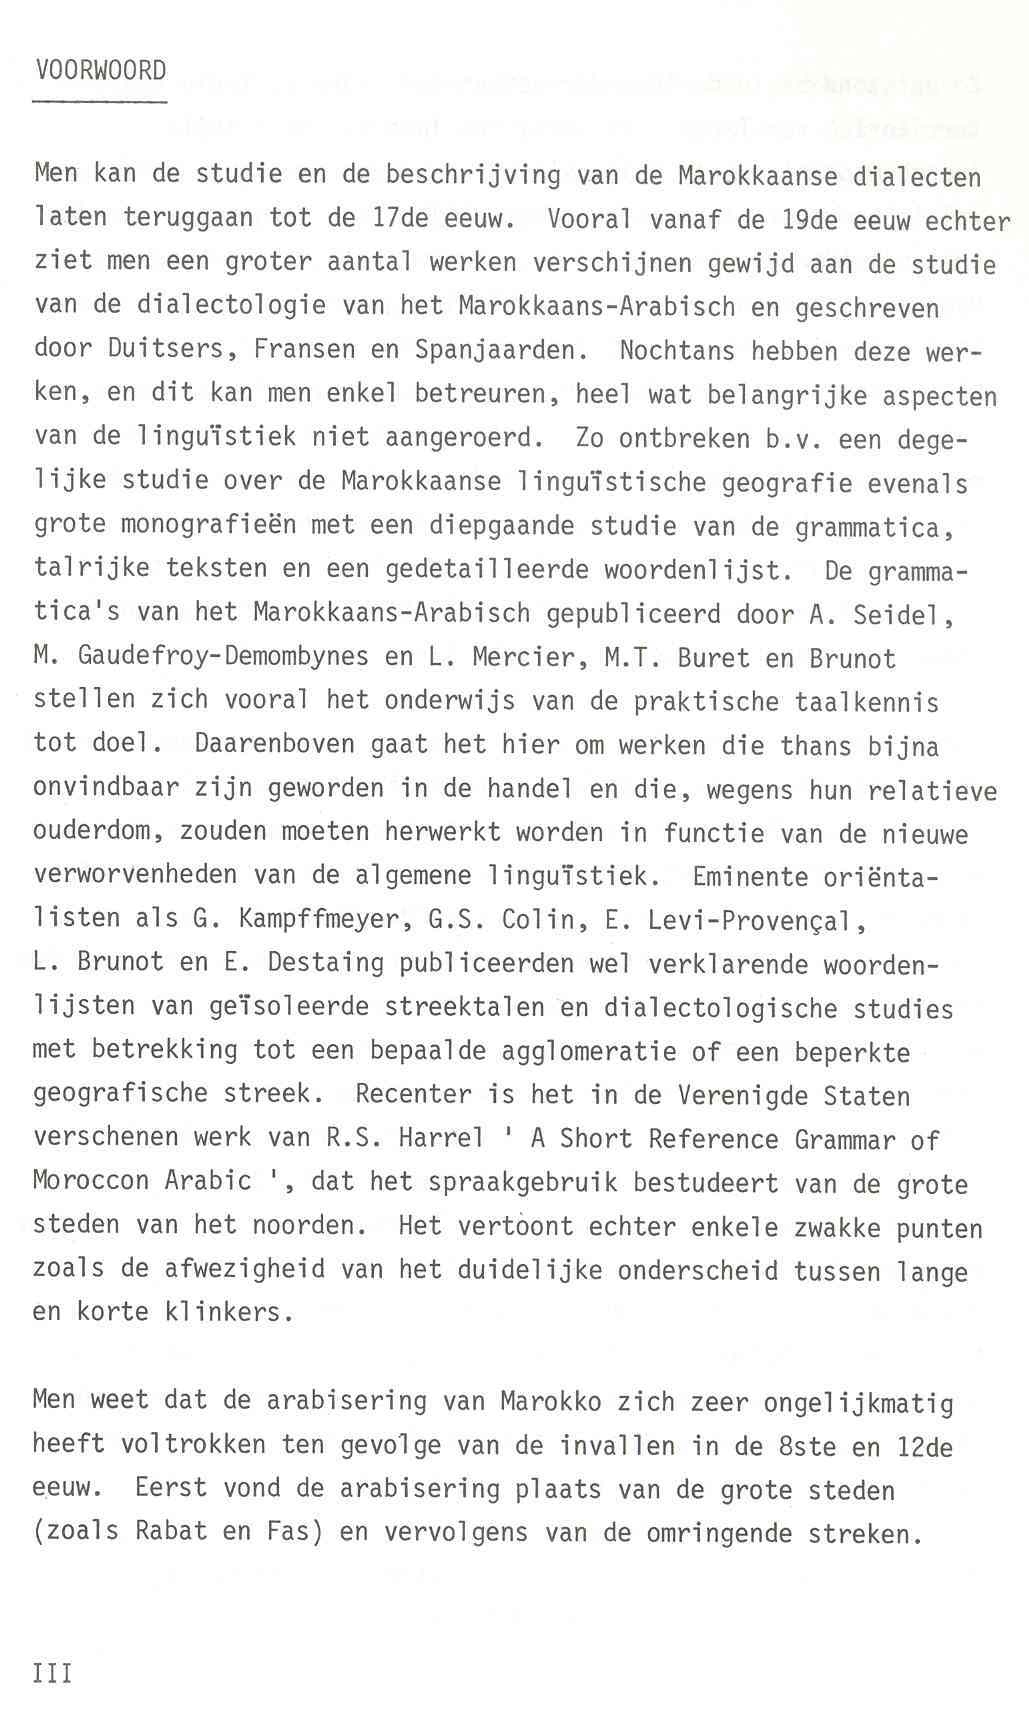 008 Voorwoord 01 Essay Example Dehumanization In Remarkable Night Conclusion Full